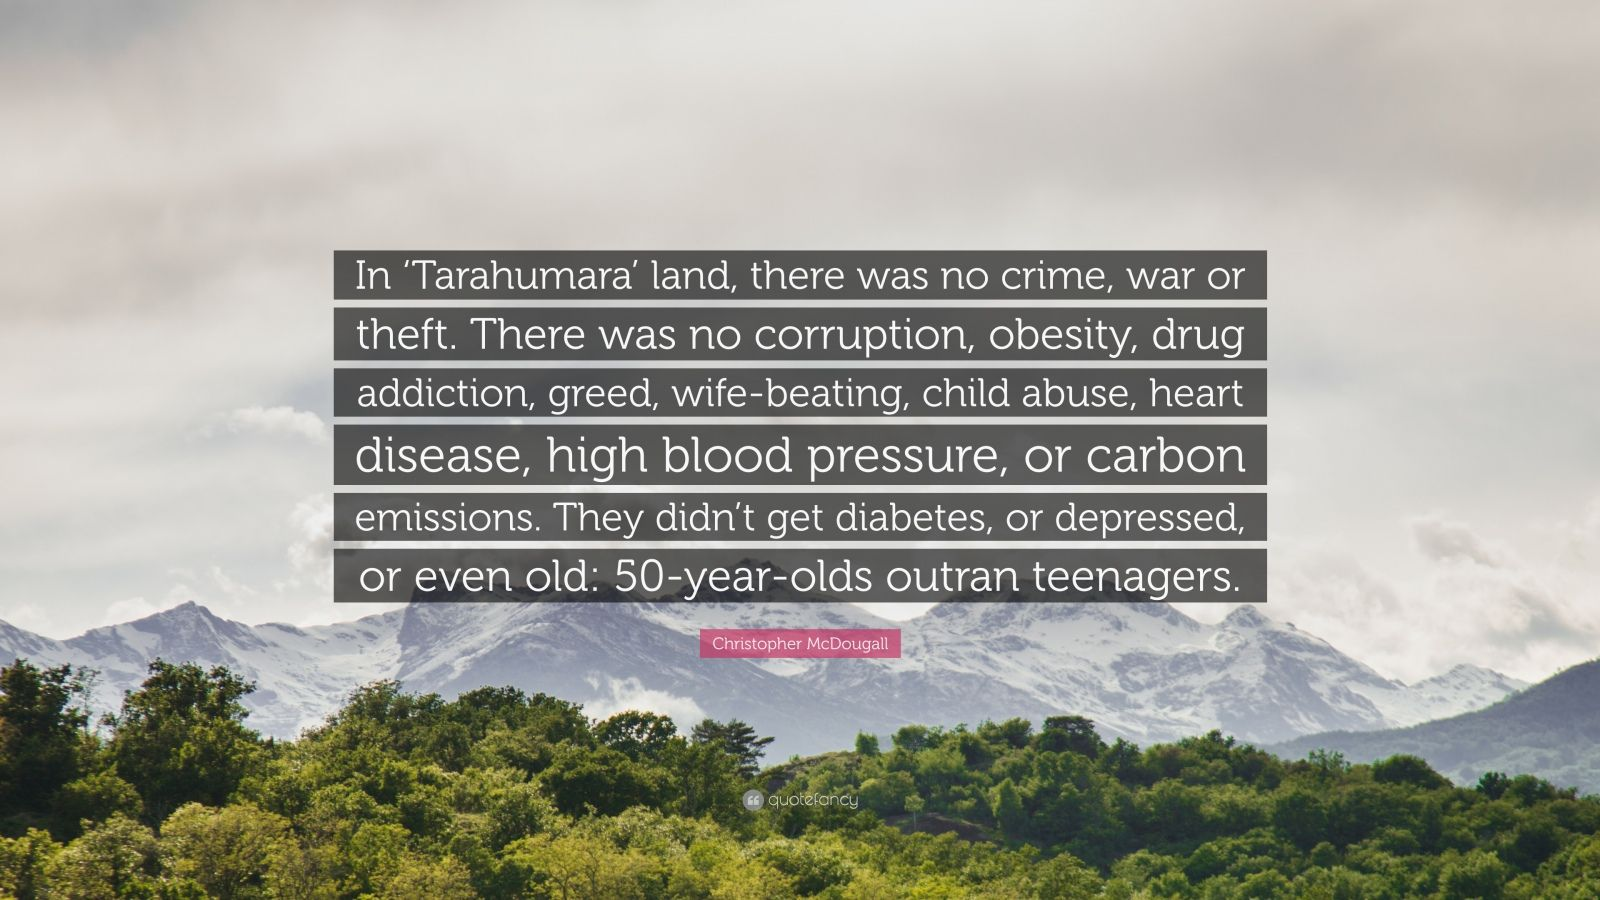 """Christopher McDougall Quote: """"In 'Tarahumara' land, there was no crime, war or theft. There was no corruption, obesity, drug addiction, greed, wife-beating, child abuse, heart disease, high blood pressure, or carbon emissions. They didn't get diabetes, or depressed, or even old: 50-year-olds outran teenagers."""""""